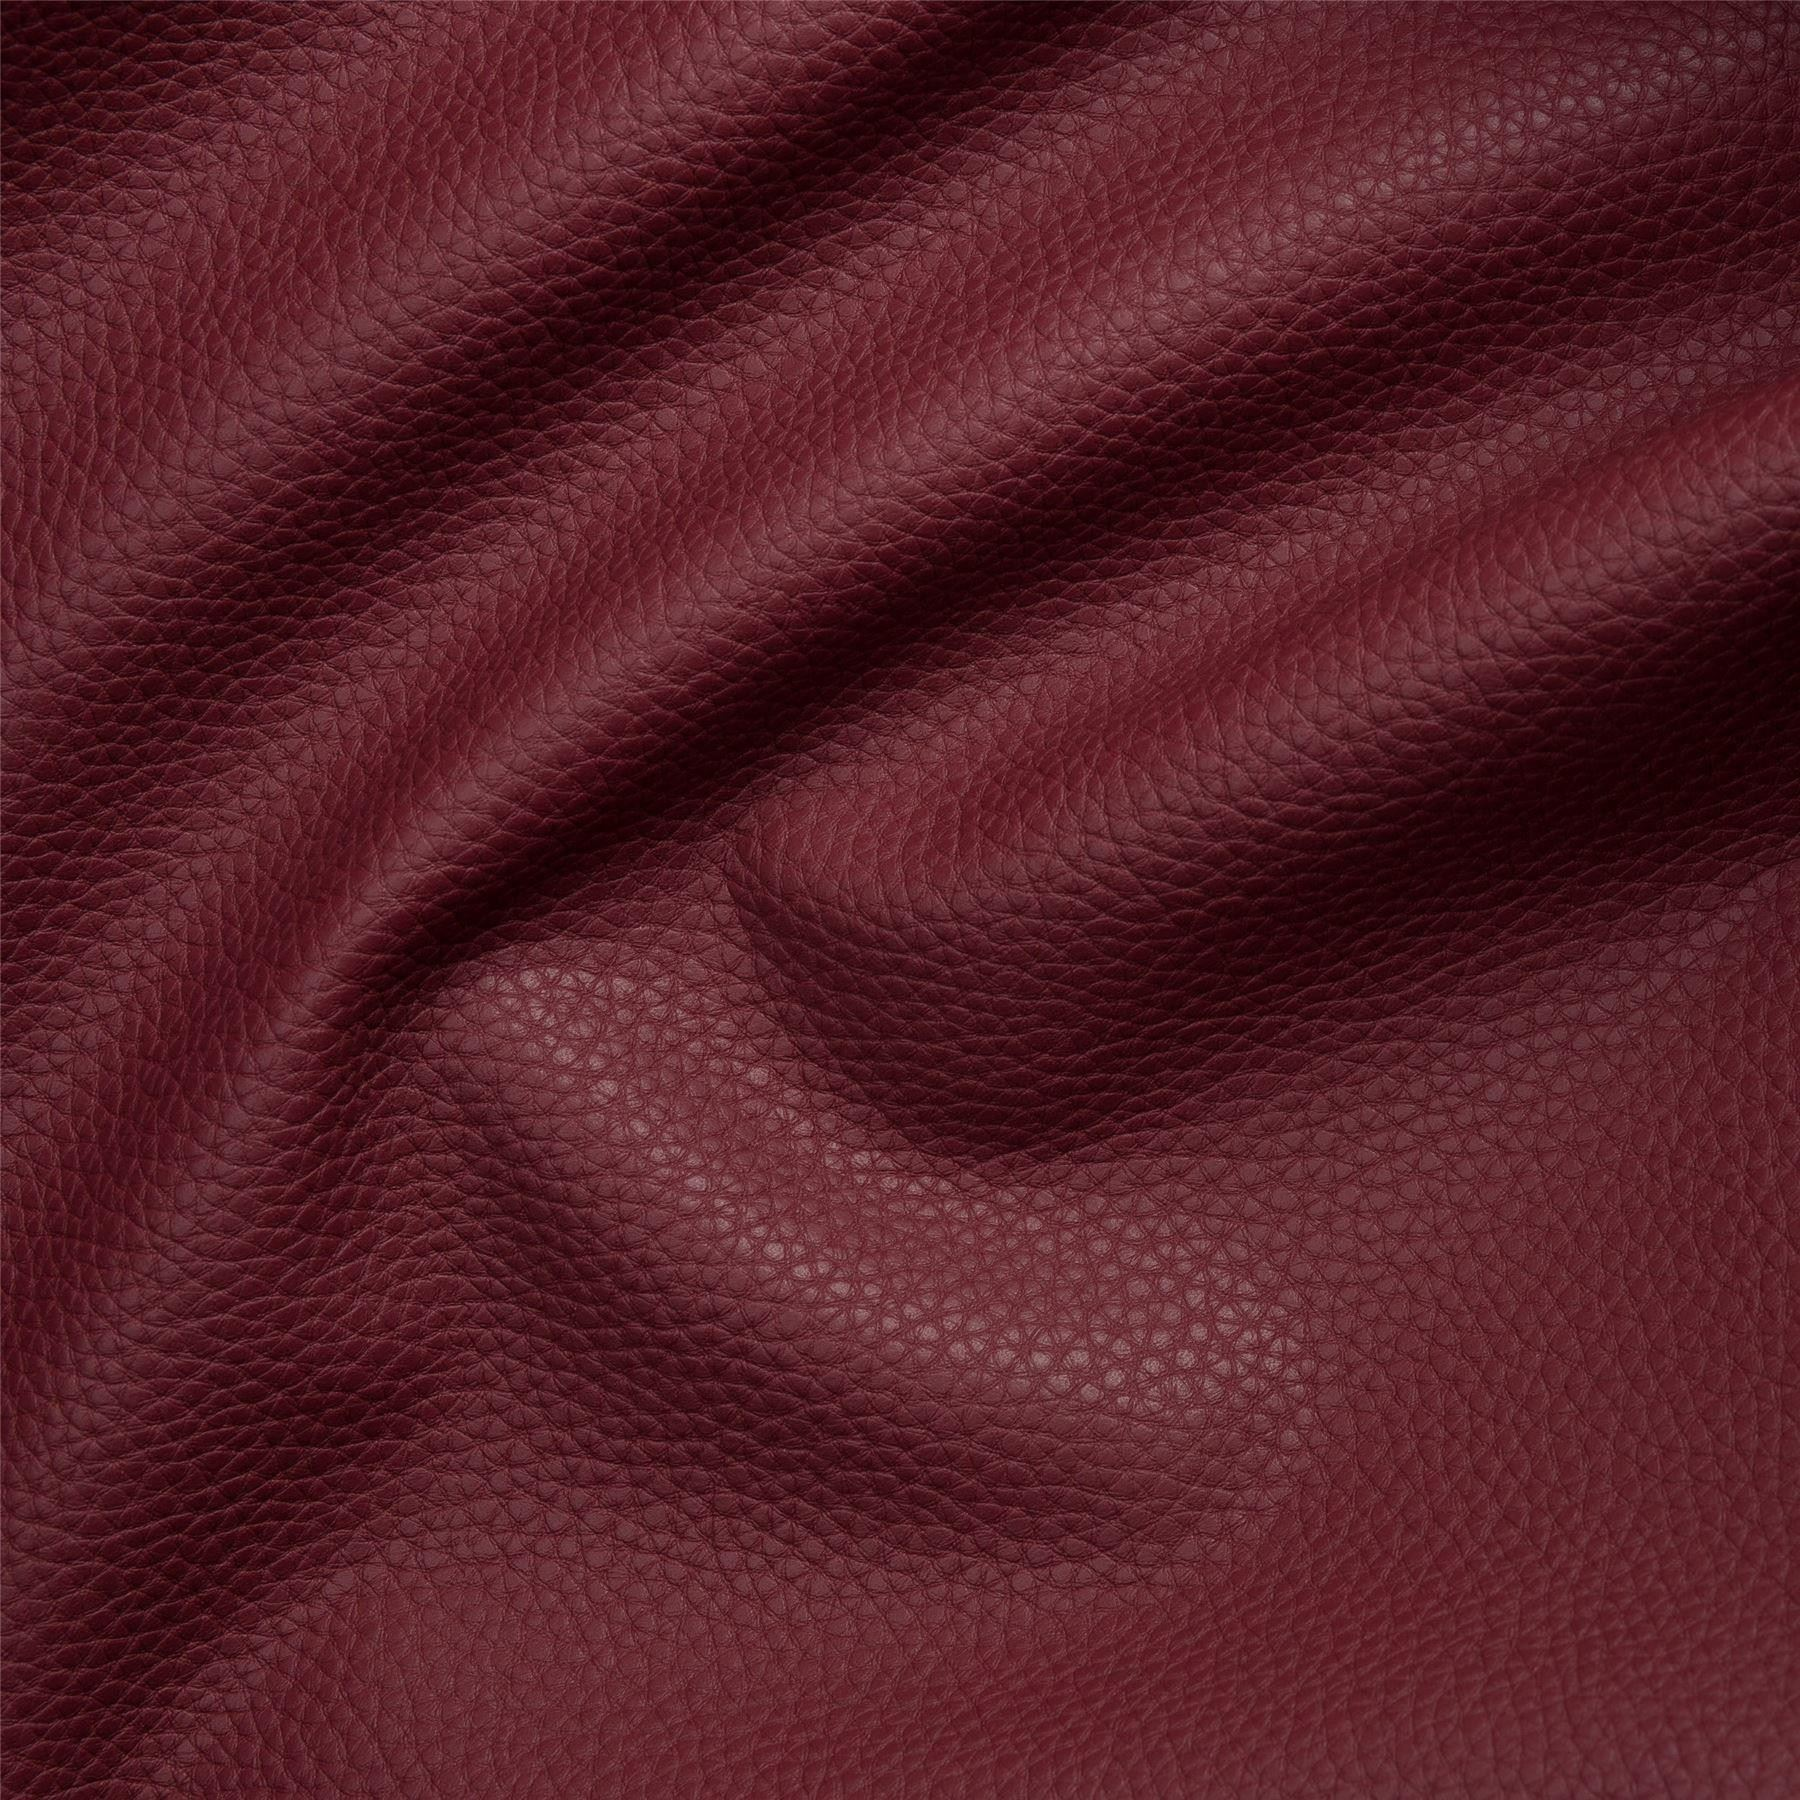 Nova-Faux-Leatherette-Artificial-Leather-Heavy-Grain-Upholstery-Vehicle-Fabric thumbnail 51